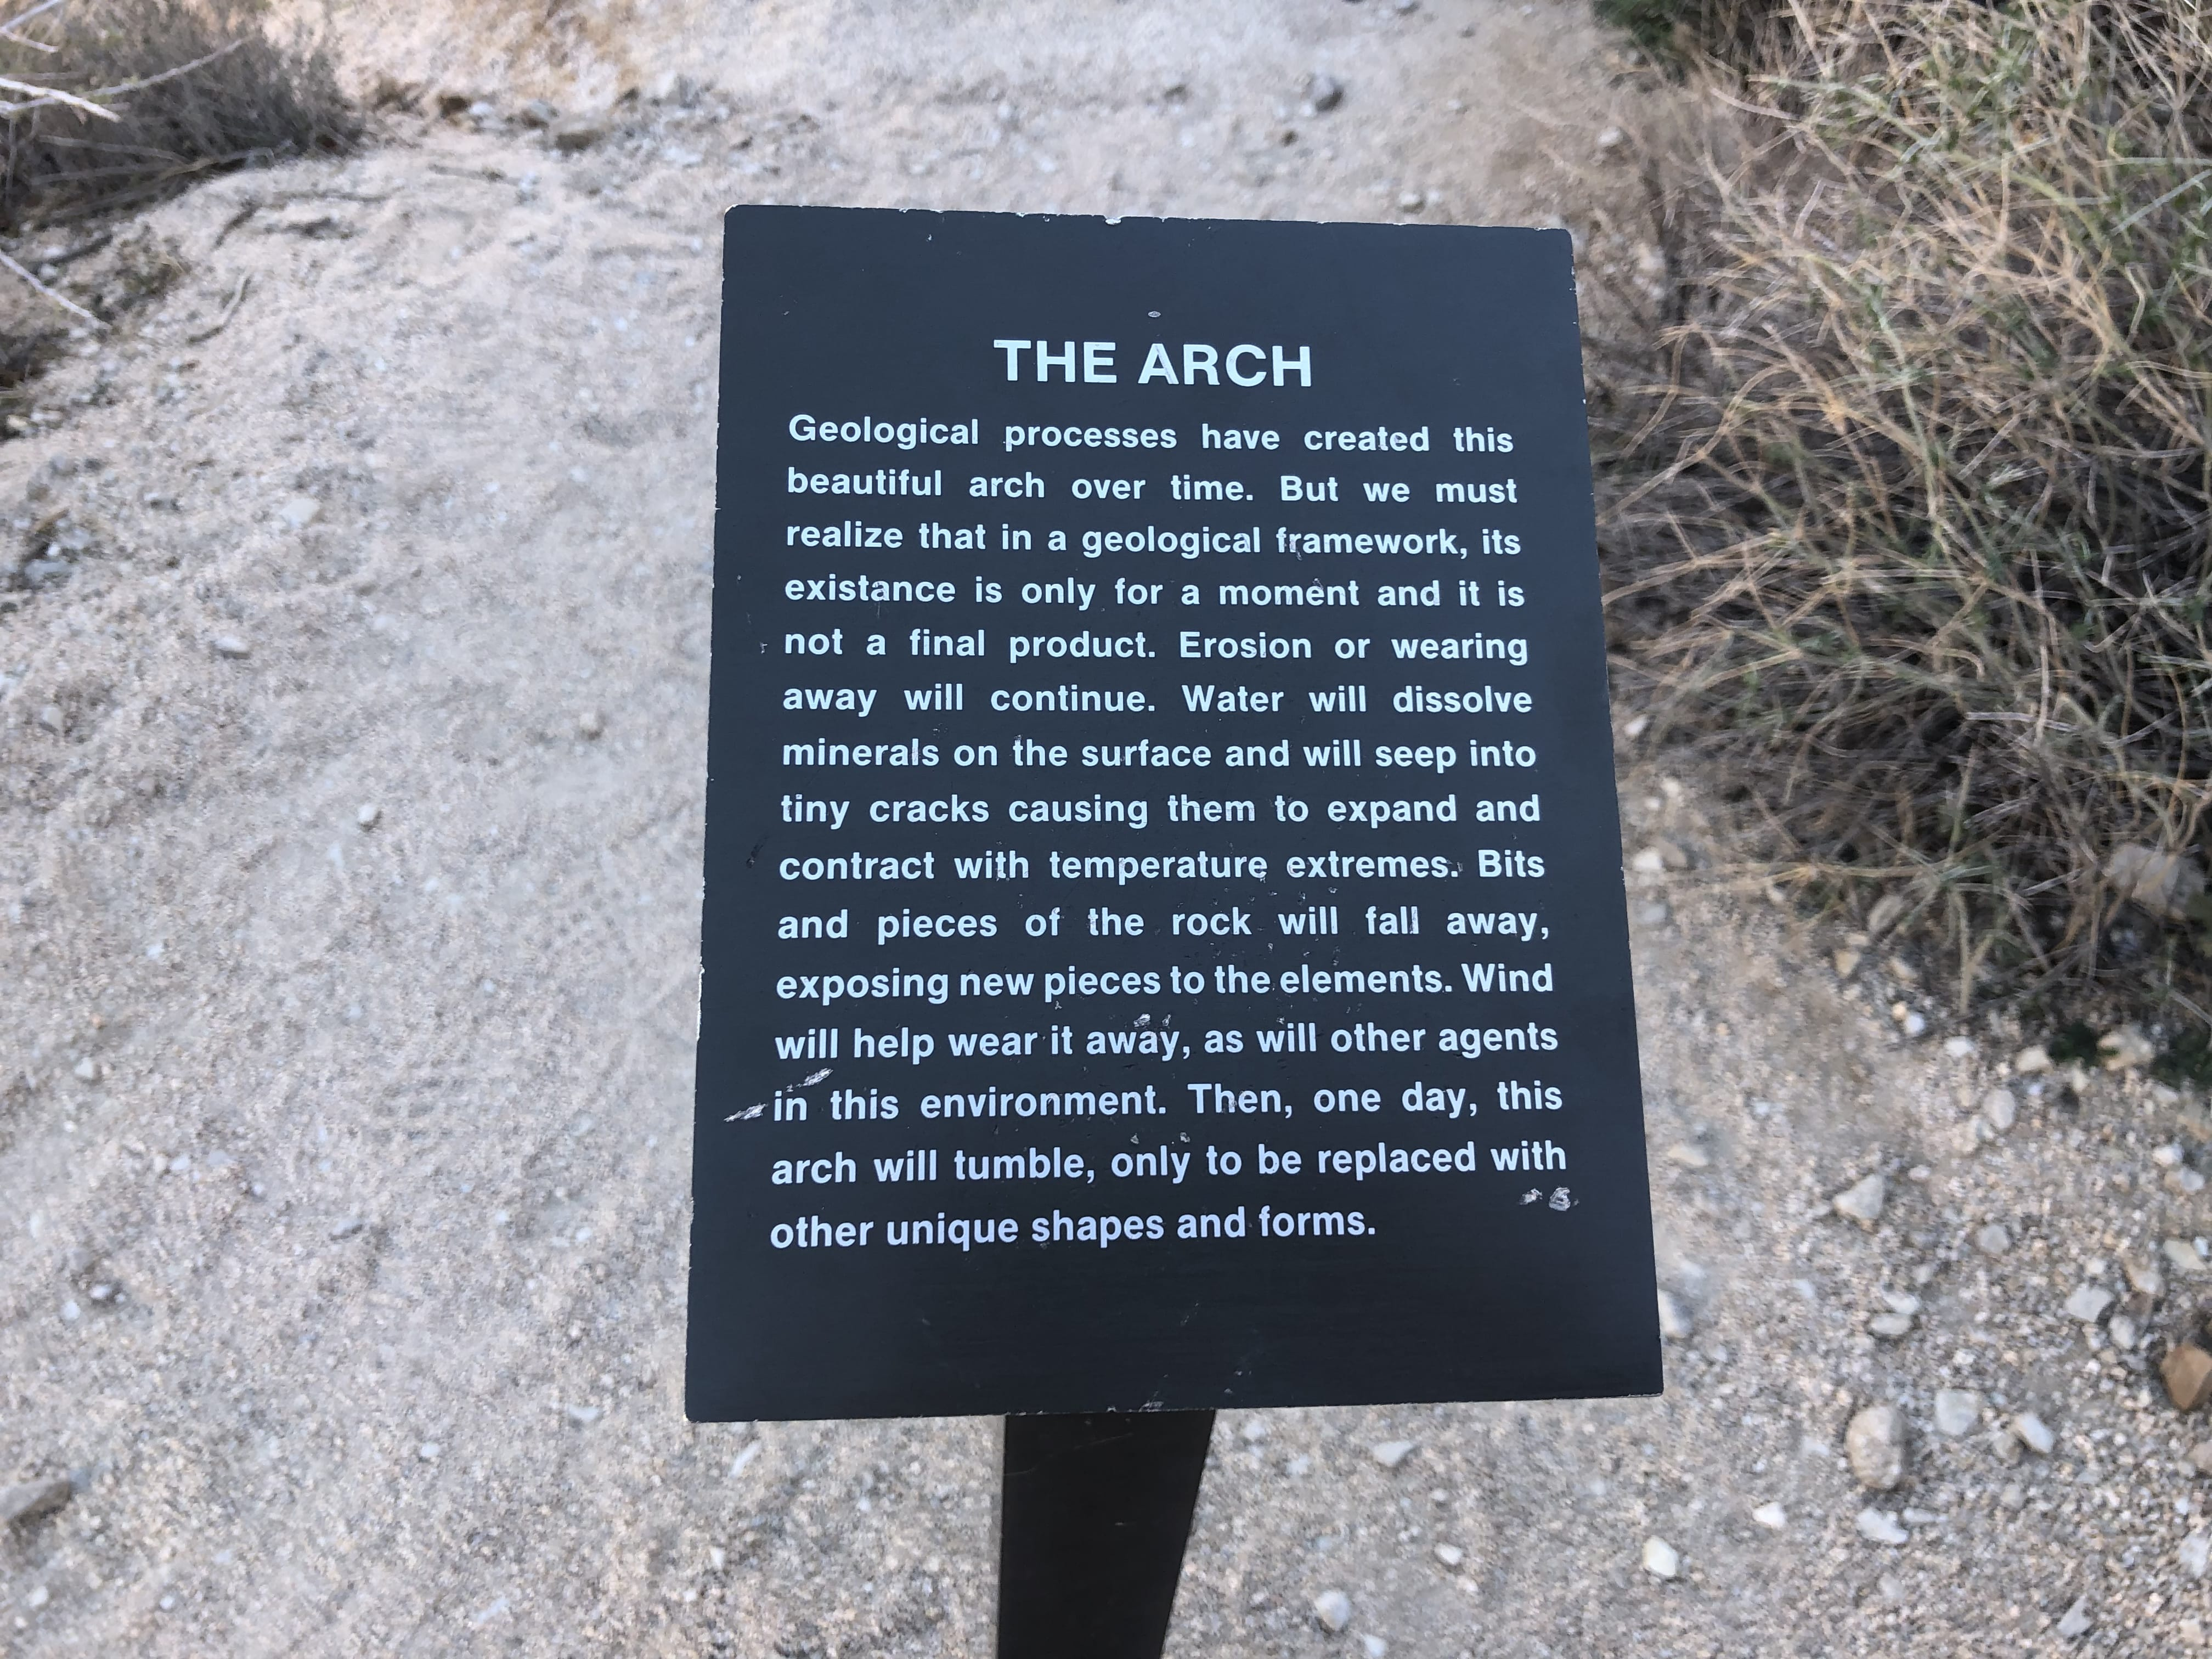 About the Arch in Joshua Tree National Park